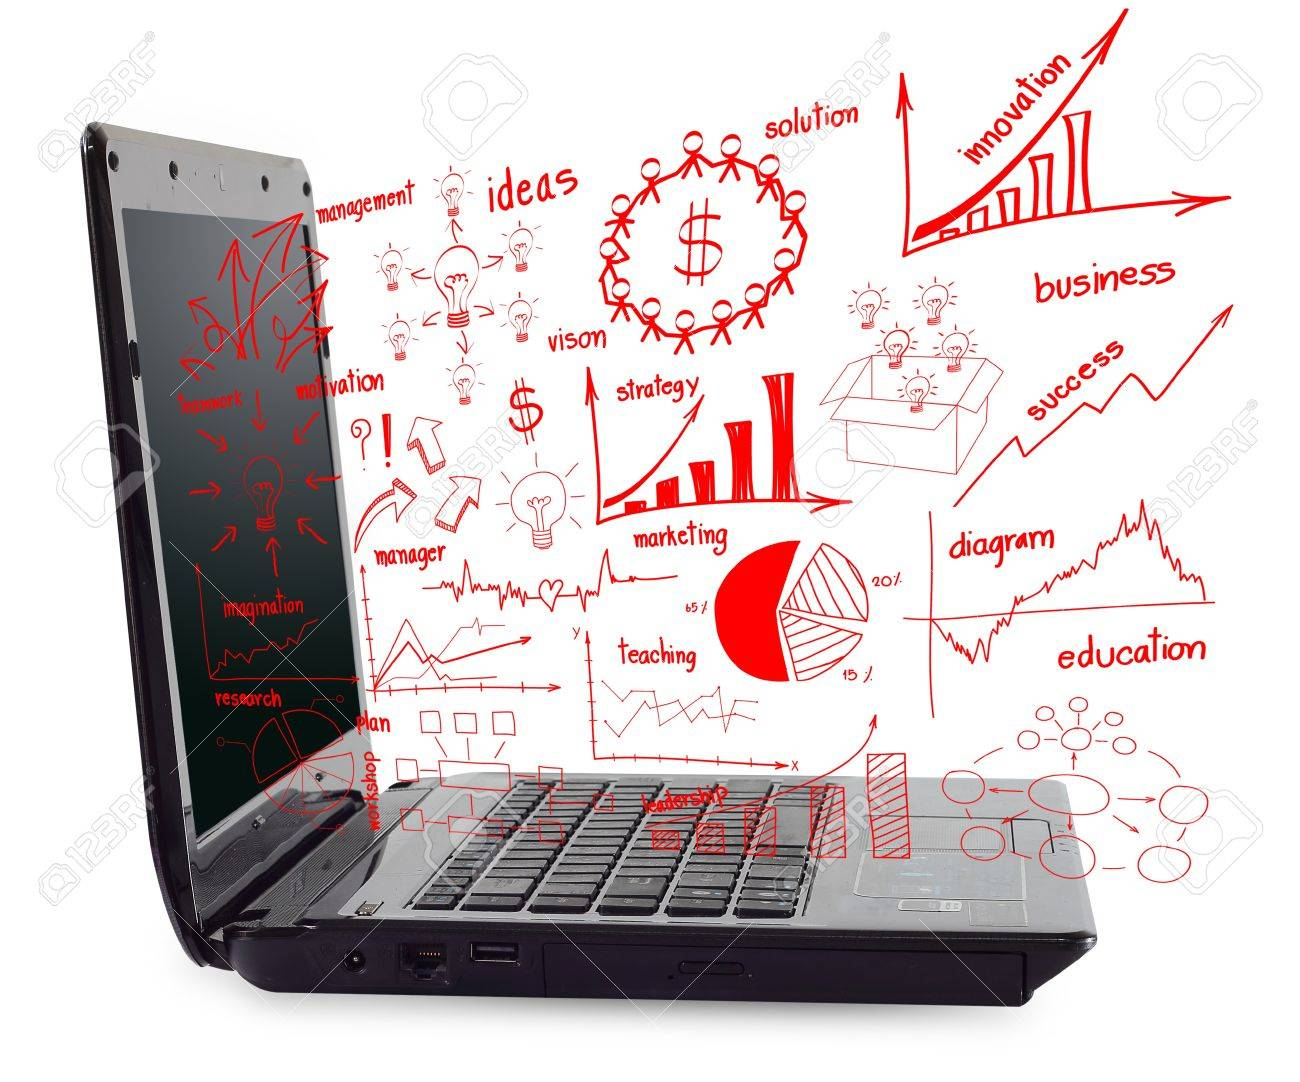 laptop computer pc with drawing business plan concept diagrams stock photo,  picture and royalty free image. image 15856506.  123rf.com